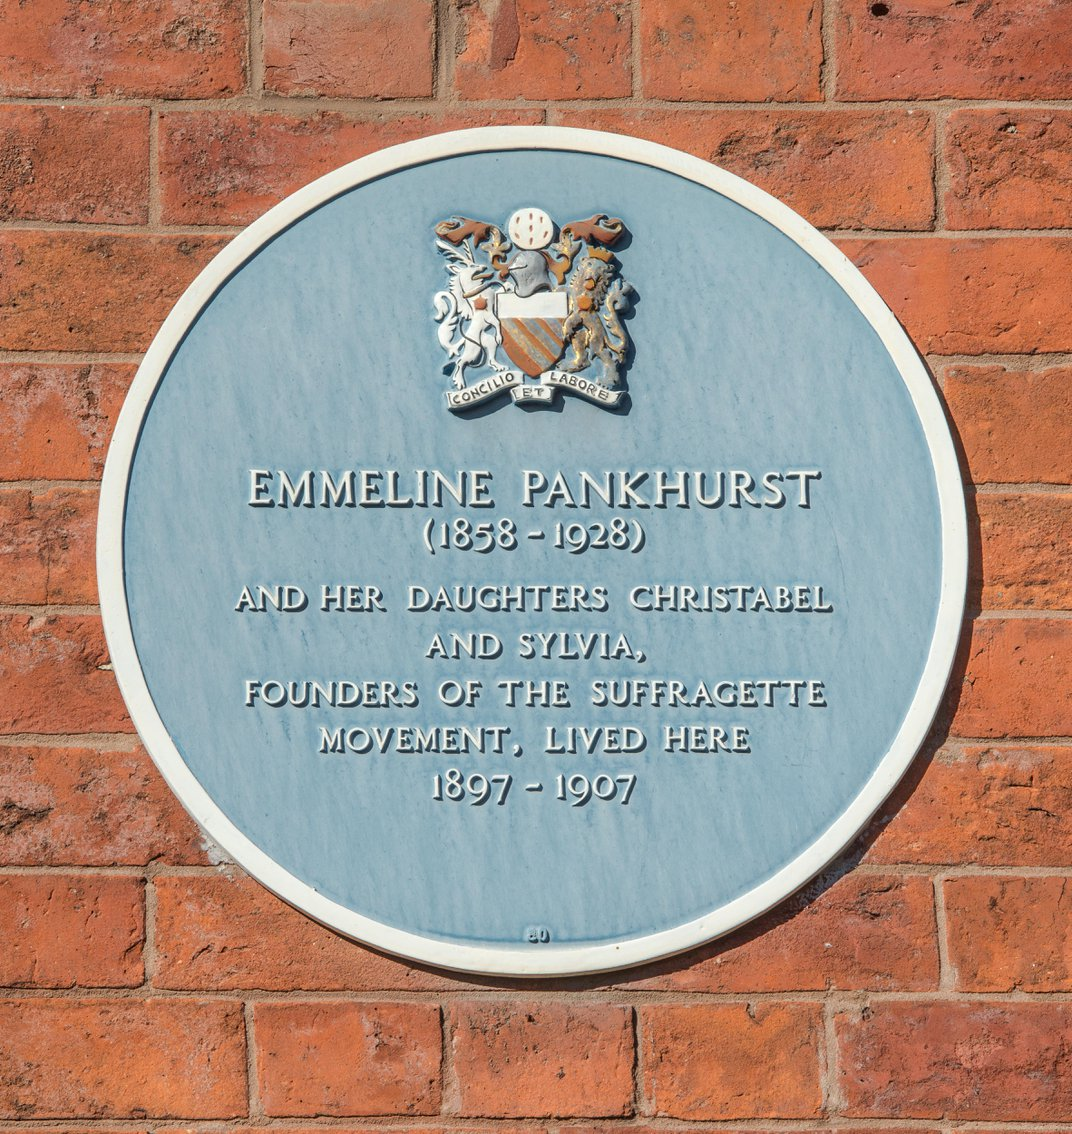 London Will Install Six New Plaques Commemorating Women's History